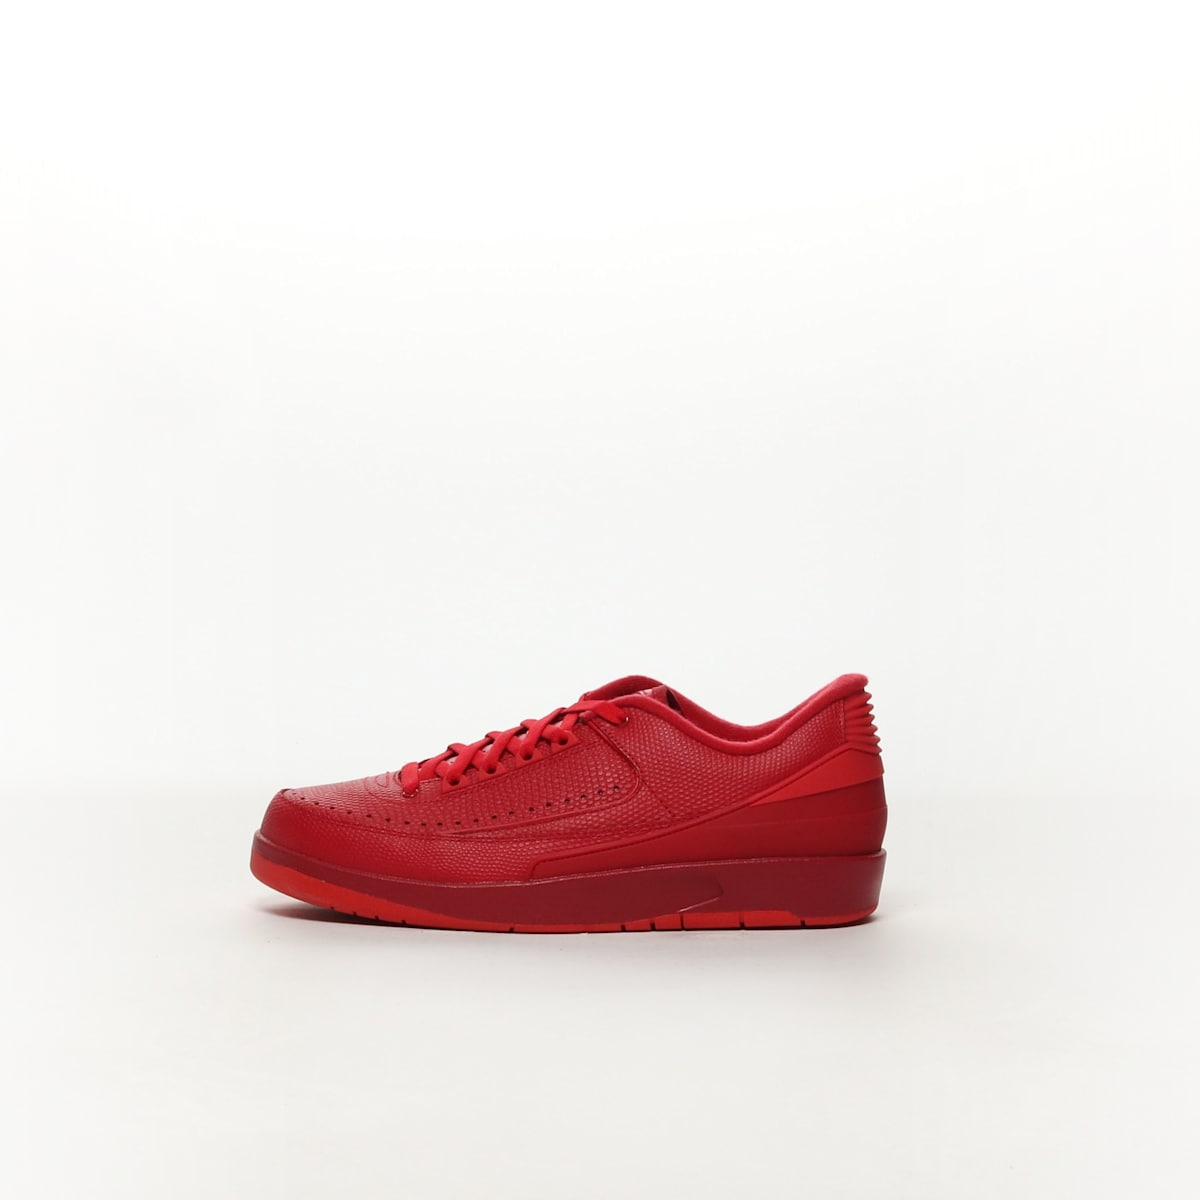 e89edee42abc62 Air Jordan 2 Retro Low - GYM RED HYPER TURQUOISE UNIVERSITY RED – Resku